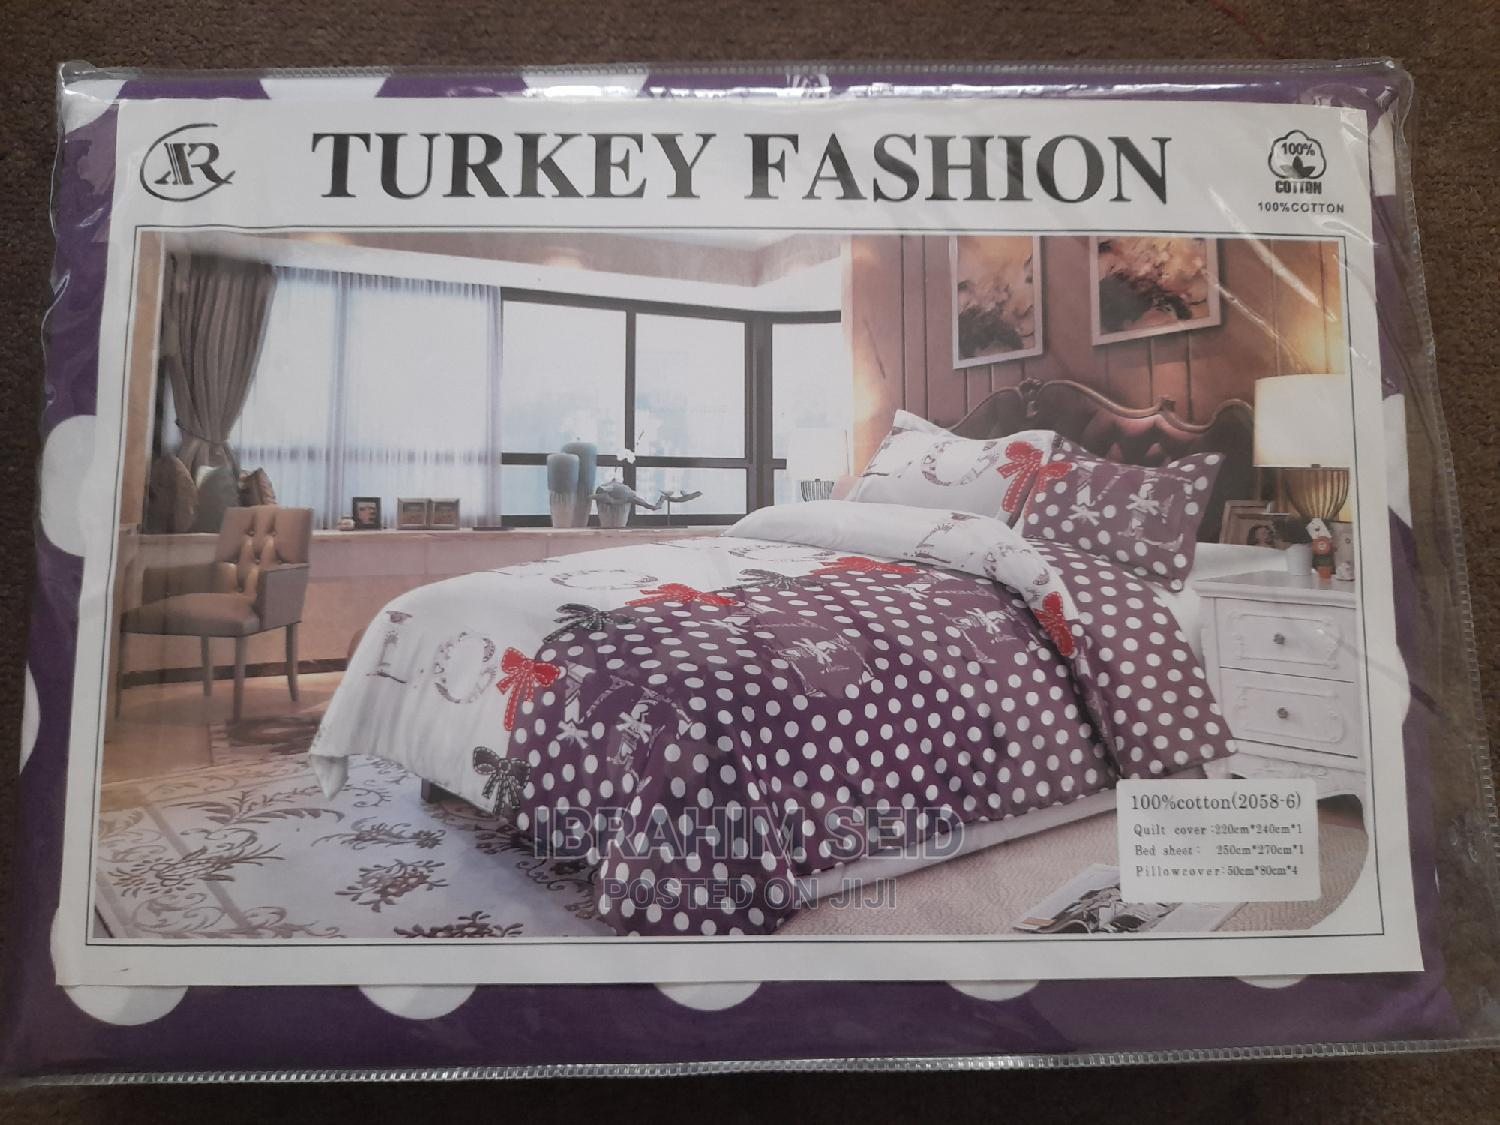 Turkey Fashion 6pcs Bed Cover | Home Accessories for sale in Nifas Silk-Lafto, Addis Ababa, Ethiopia